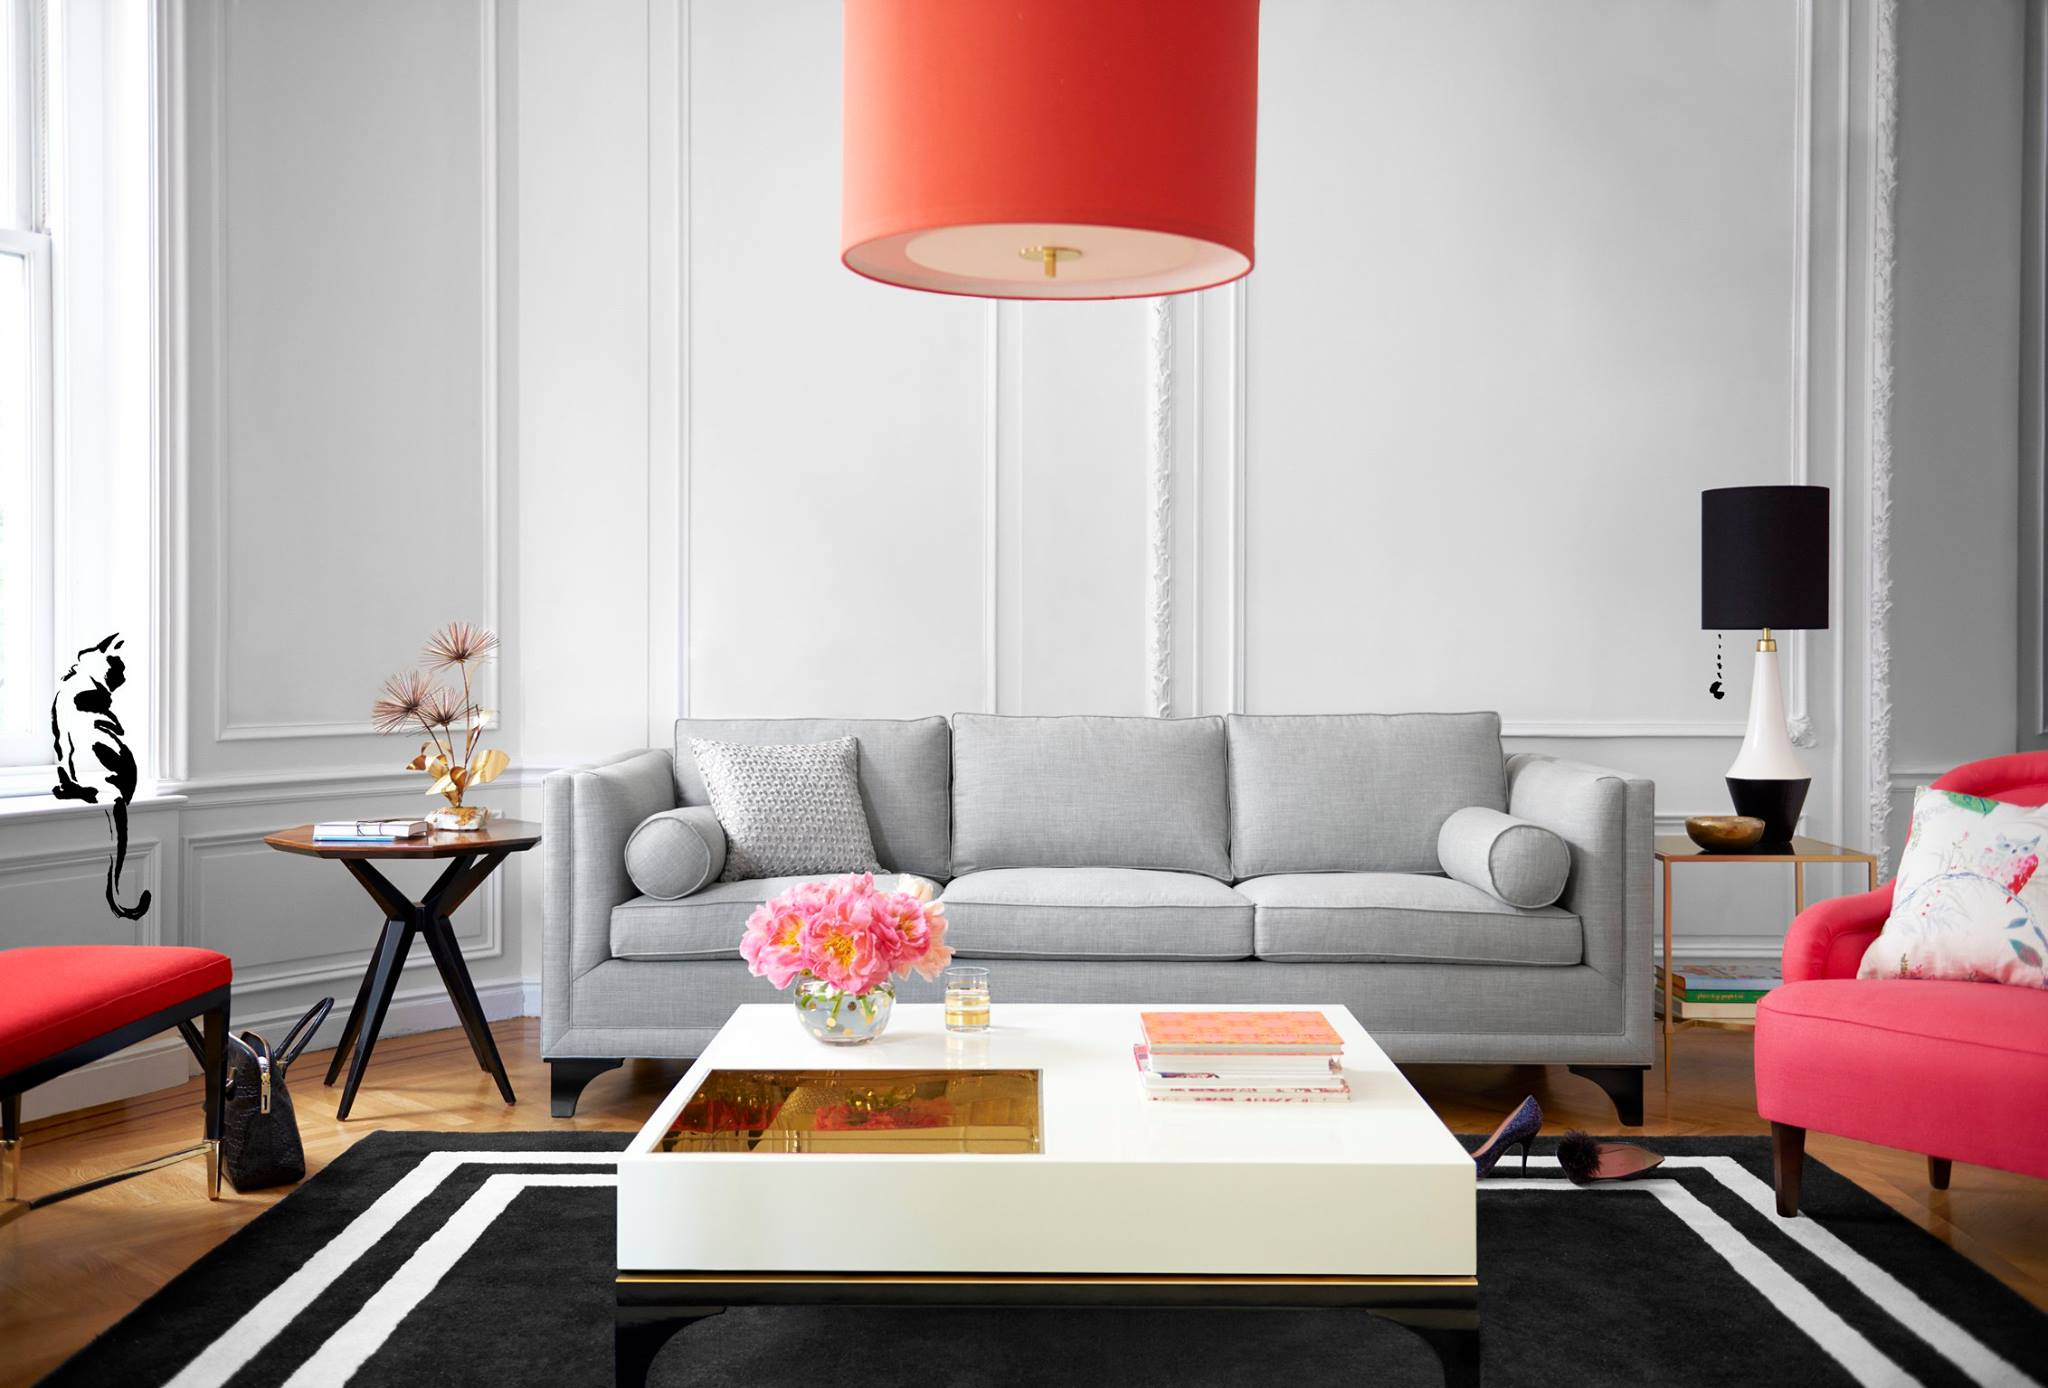 Beautiful Feast Your Eyes! Kate Spade Home Is Here, And It Is Fabulous! It Has All Of  The Color And Playfulness You Would Expect, And We Are In Love.